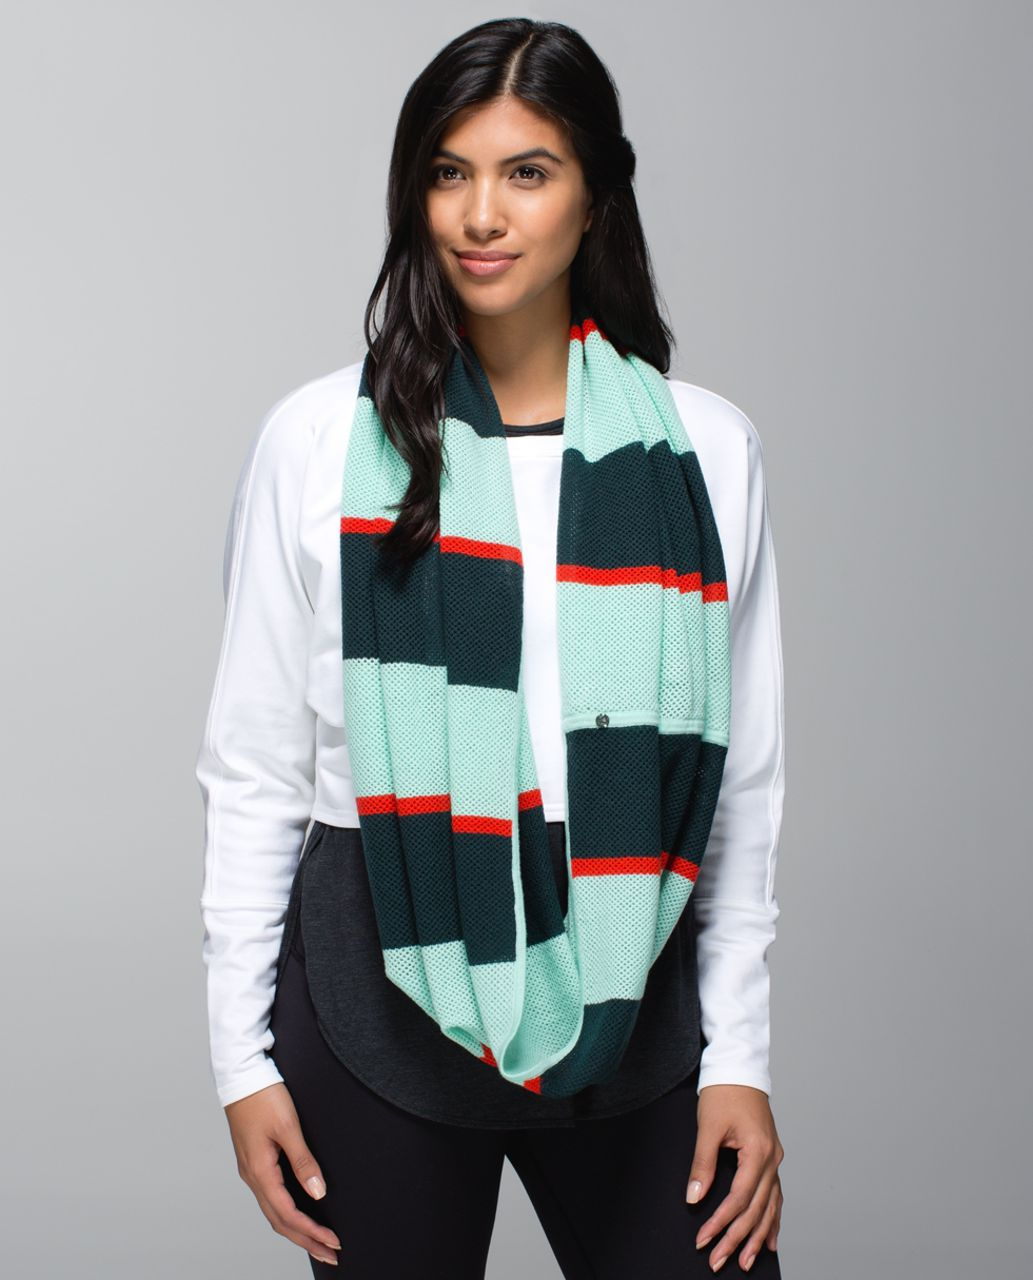 Lululemon Heart Opener Scarf *Wool - Fuel Green / Toothpaste / Flaming Tomato